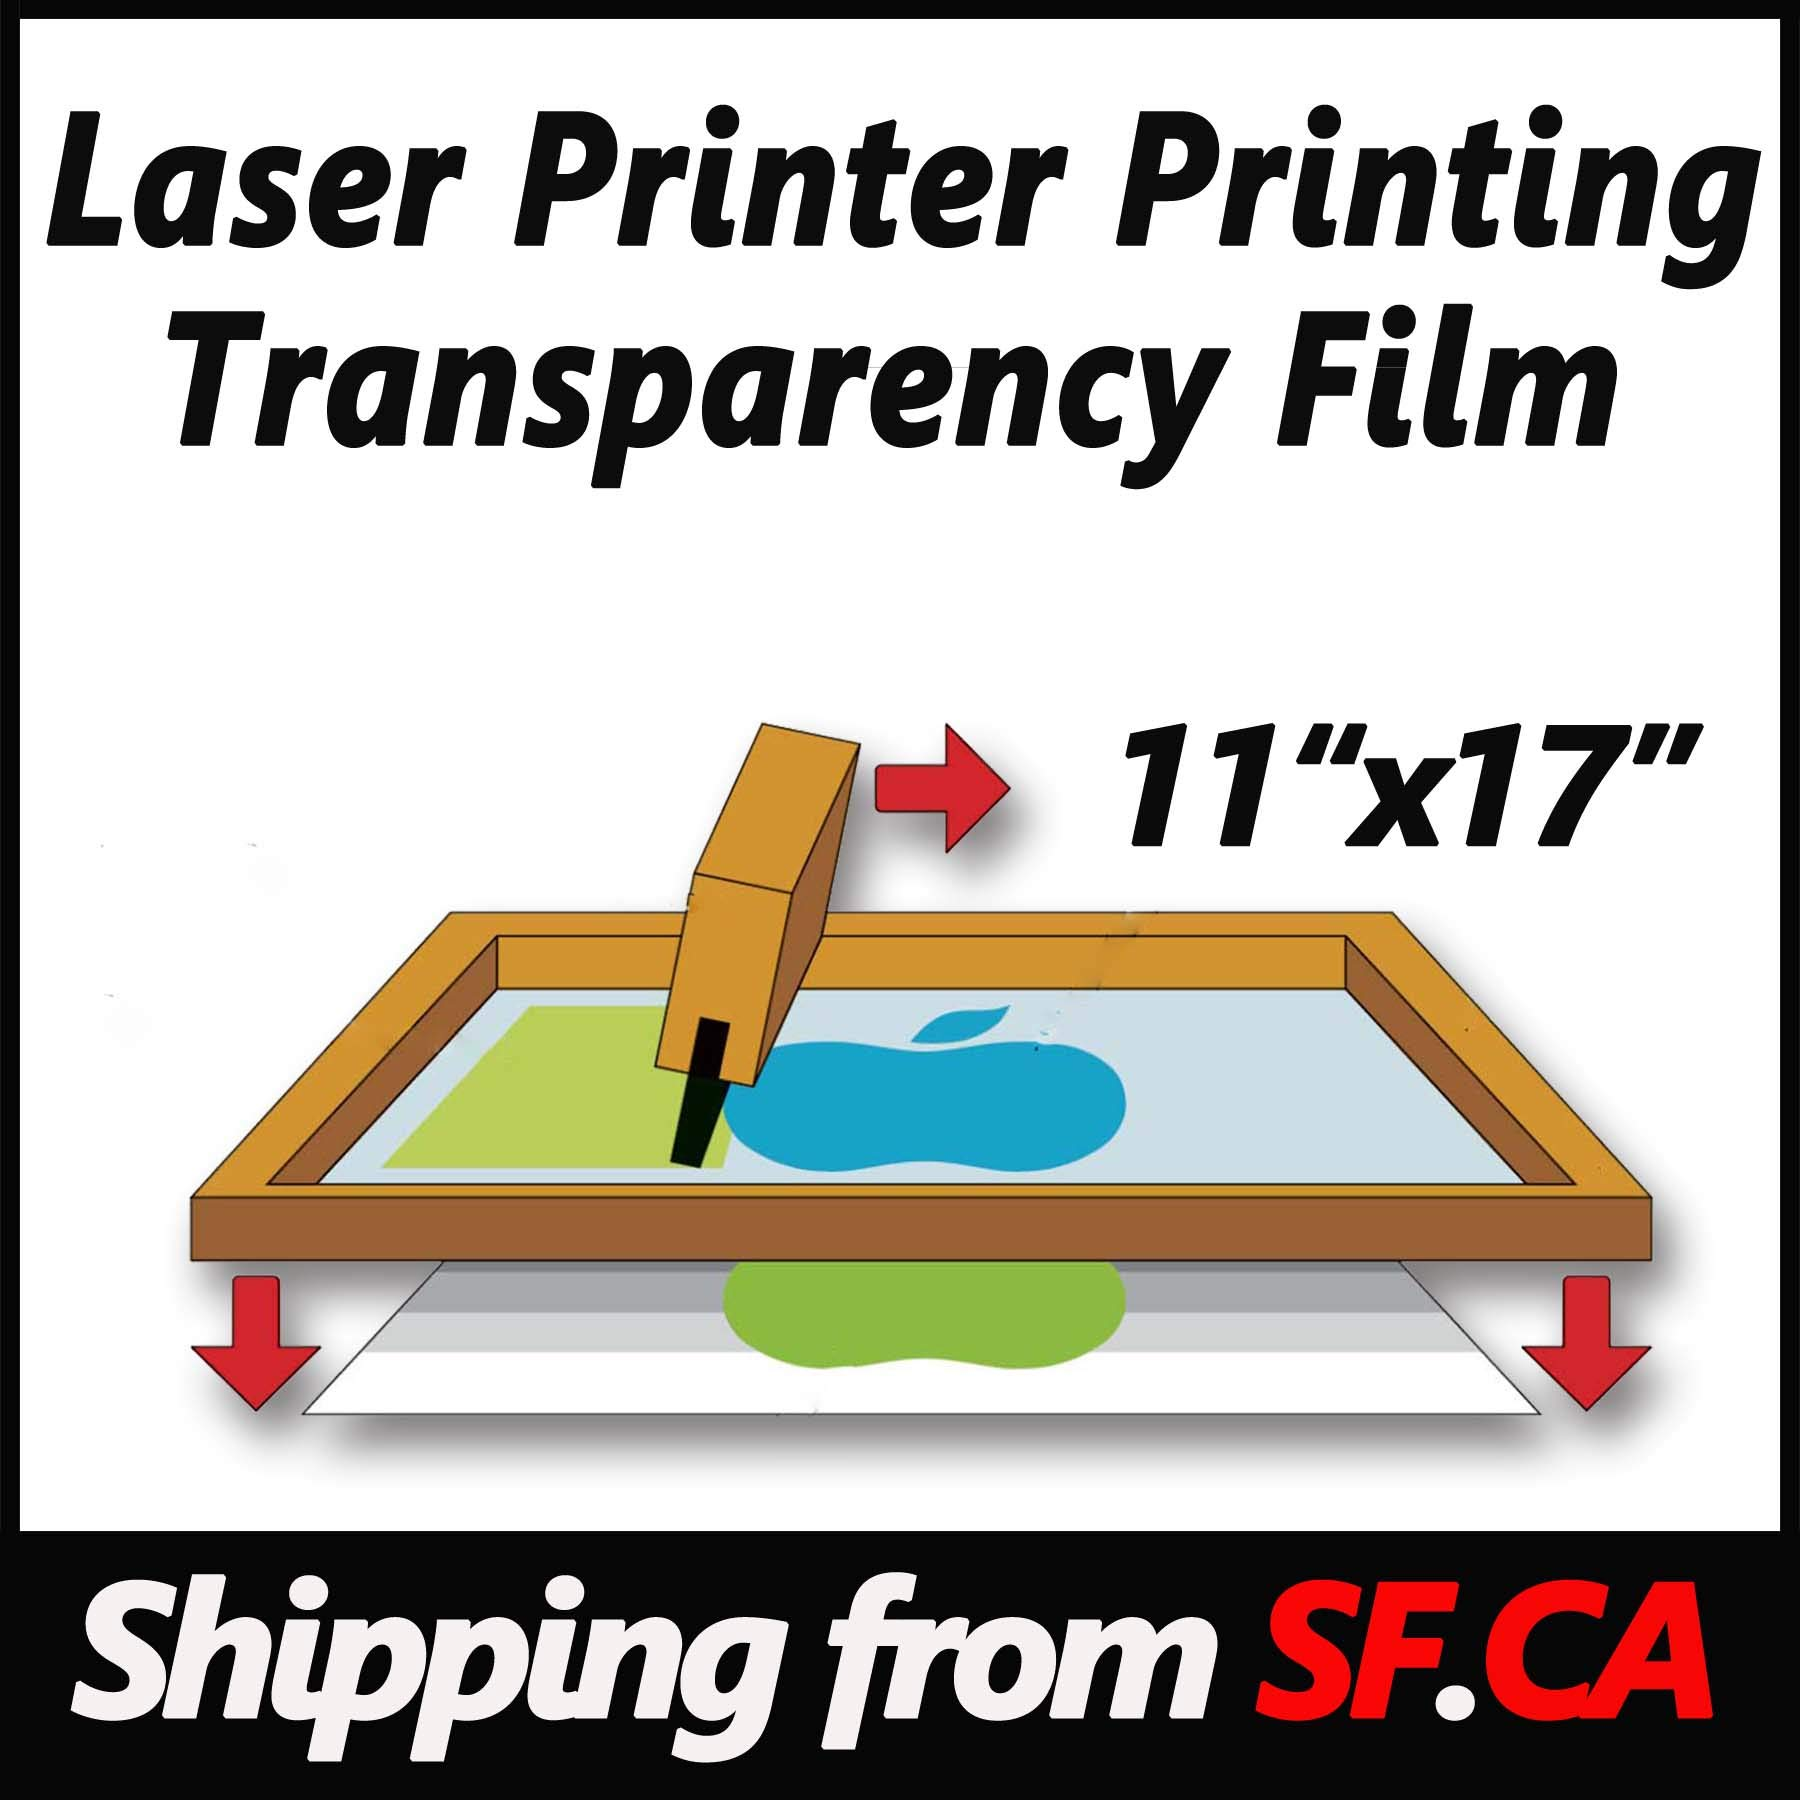 50 sheets,11''x17'',Laser Printer Printing Transparency Film for Silk Screen Printing,great for EPSON,HP,OKI,CANON,BROTHER Laser Printers